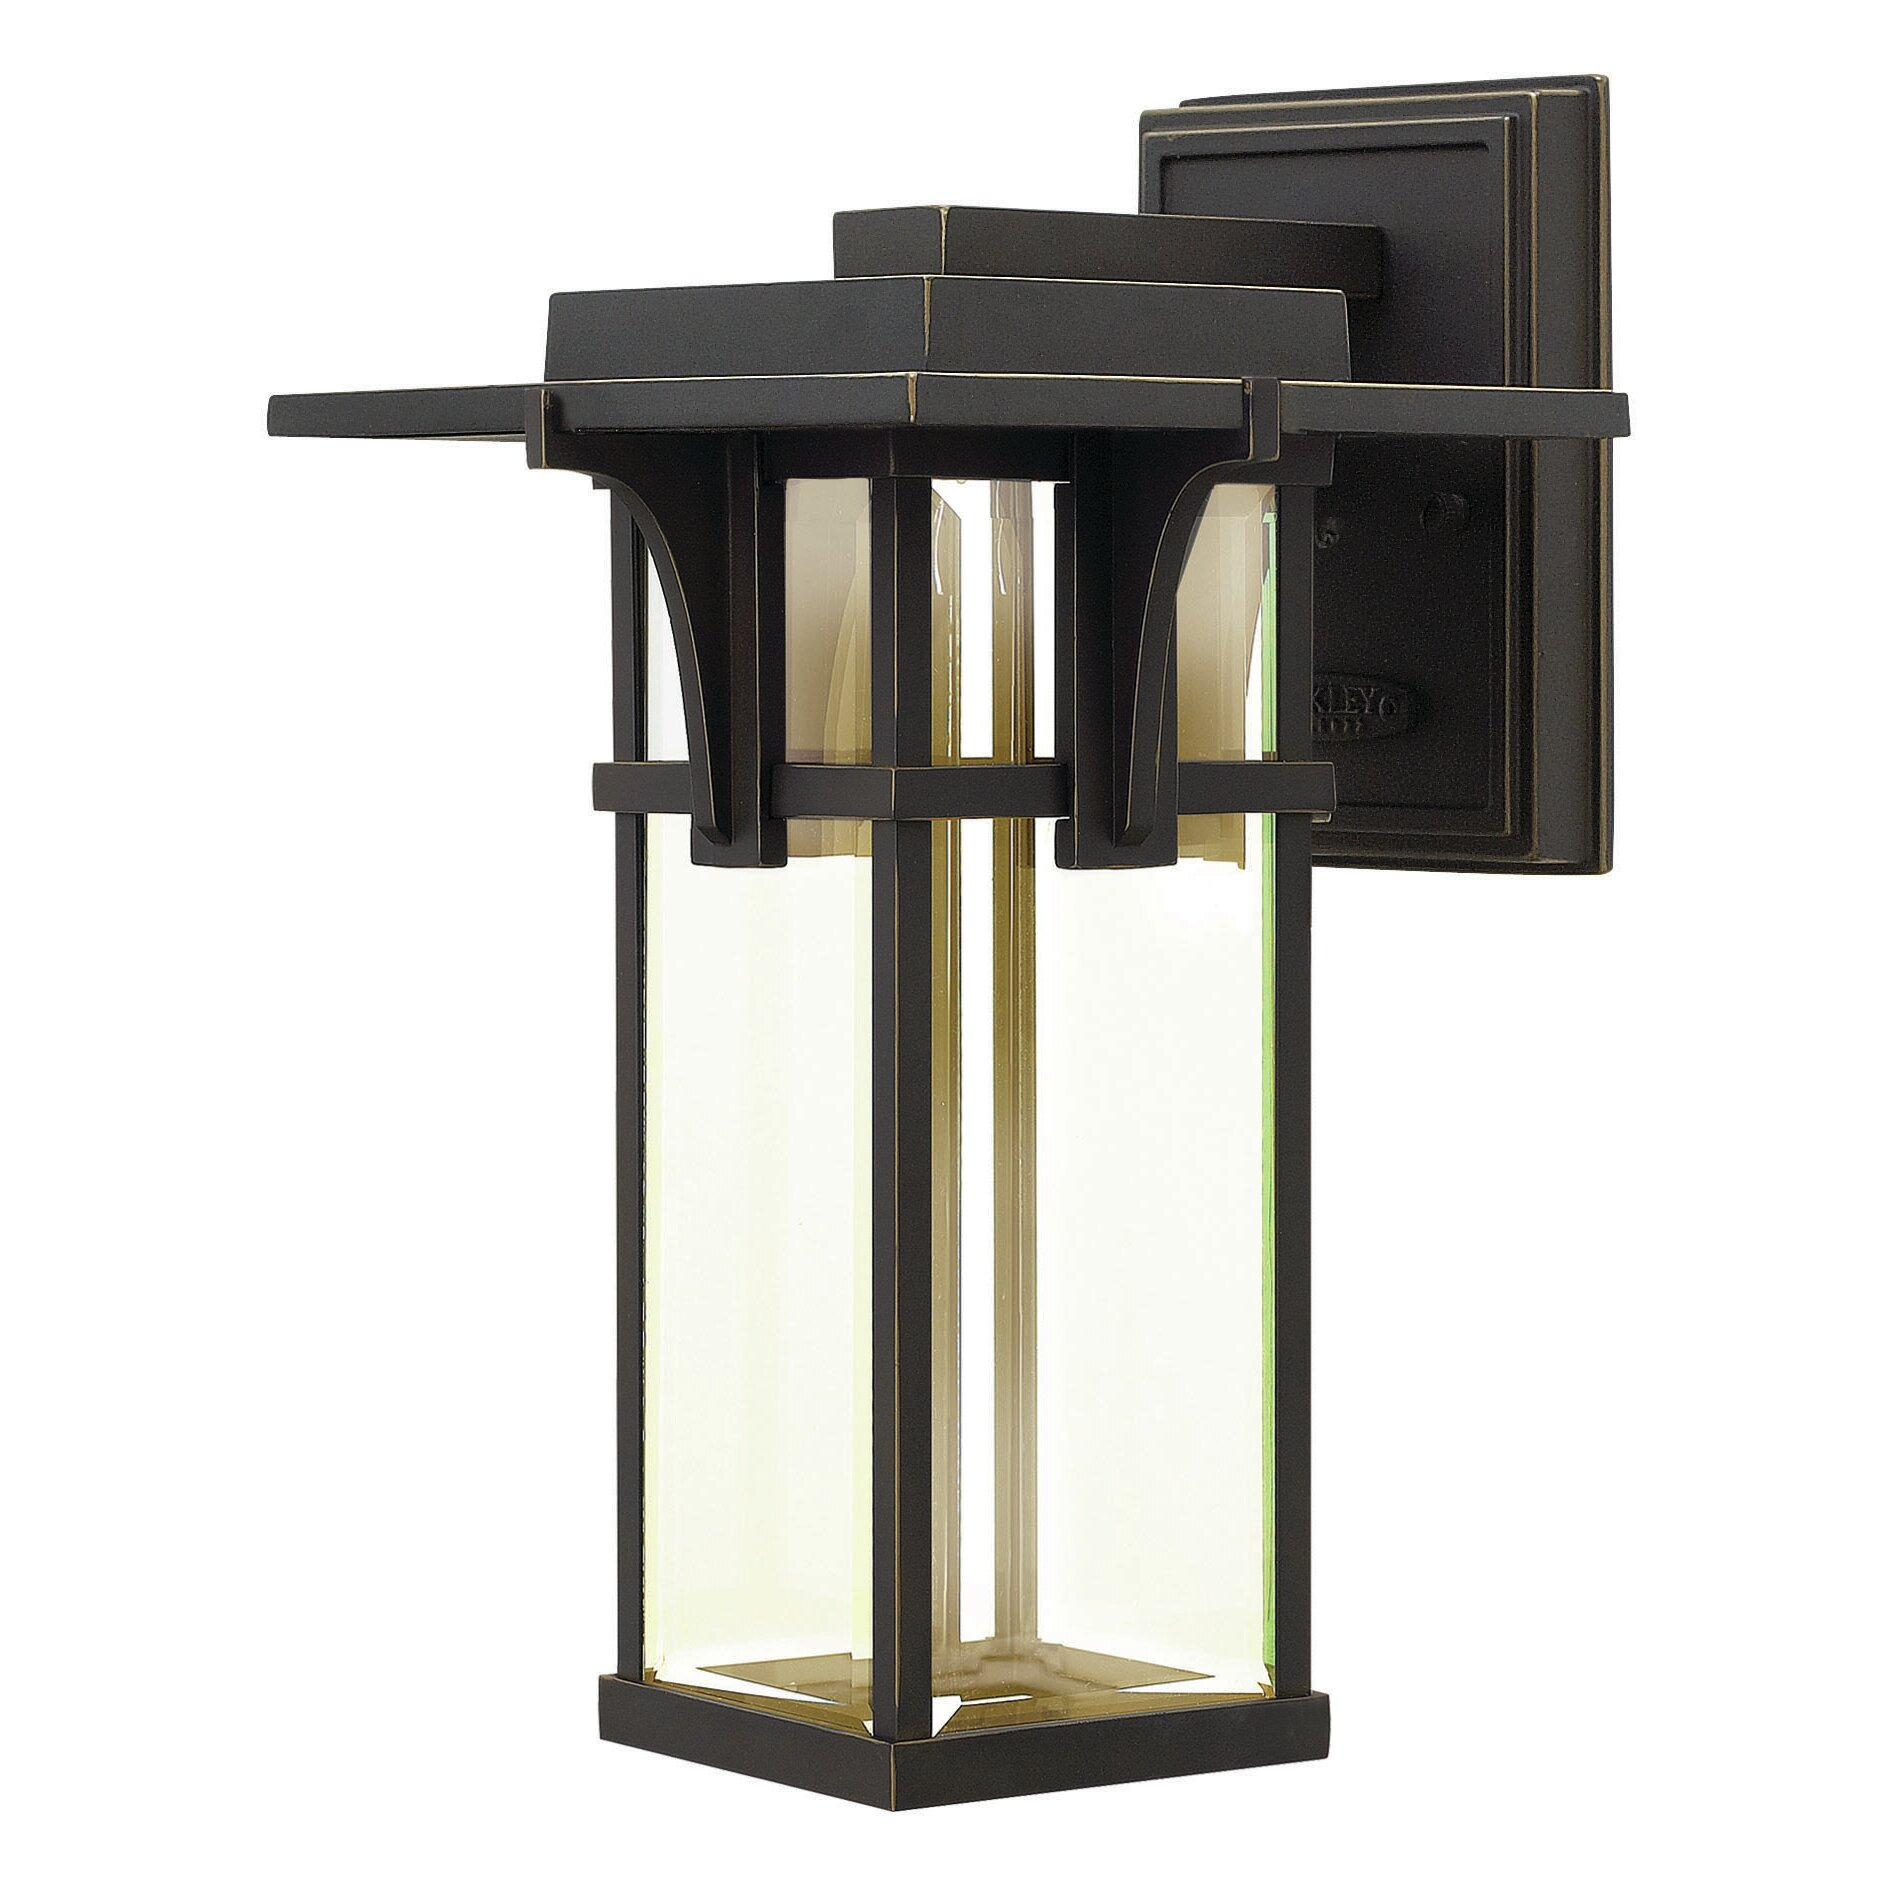 Lantern Wall Light Outdoor : Hinkley Lighting Manhattan 1 Light Outdoor Wall Lantern & Reviews Wayfair